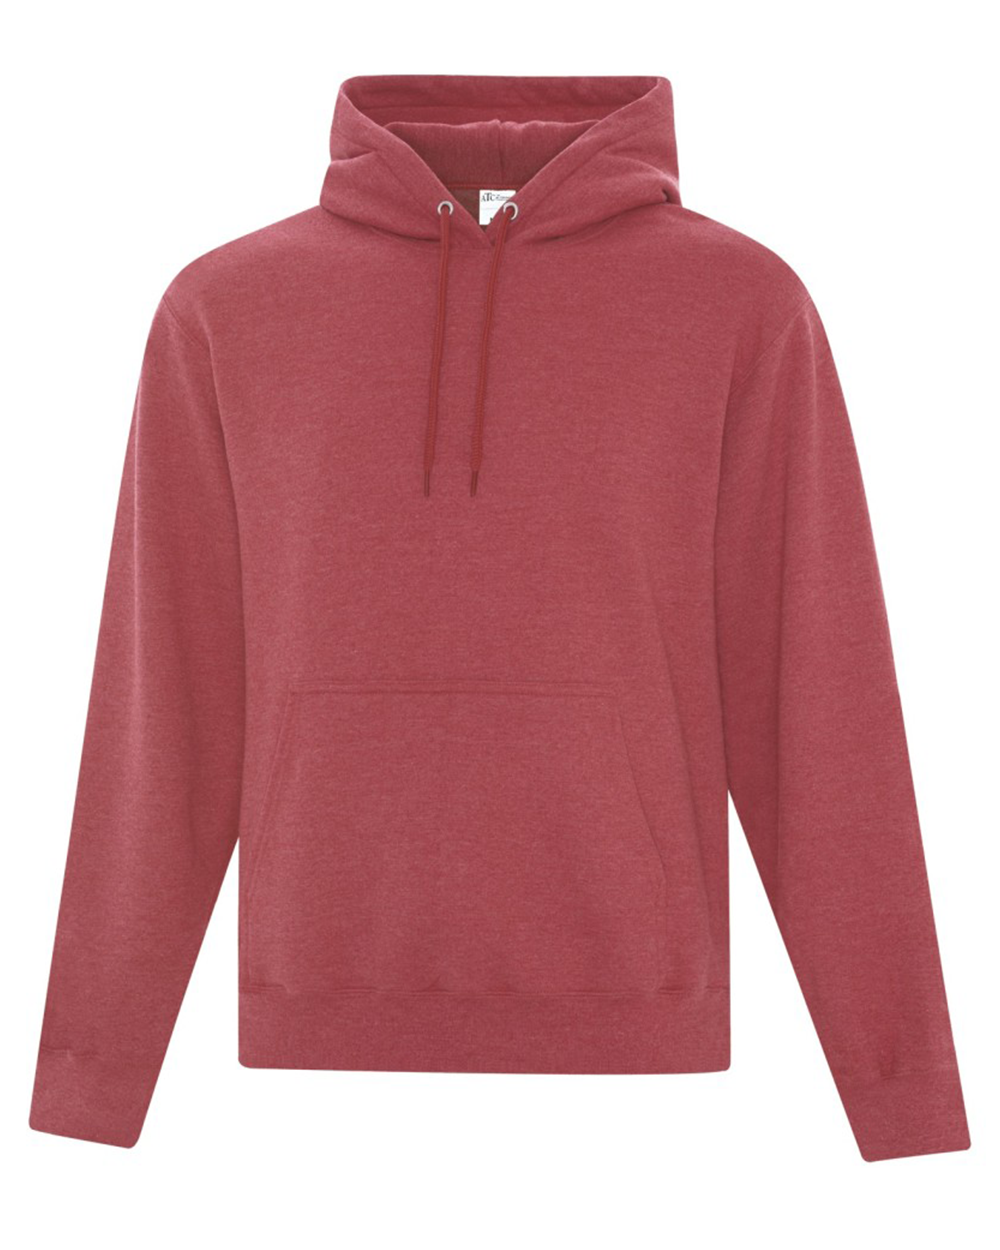 Everyday Fleece Hooded Sweatshirt